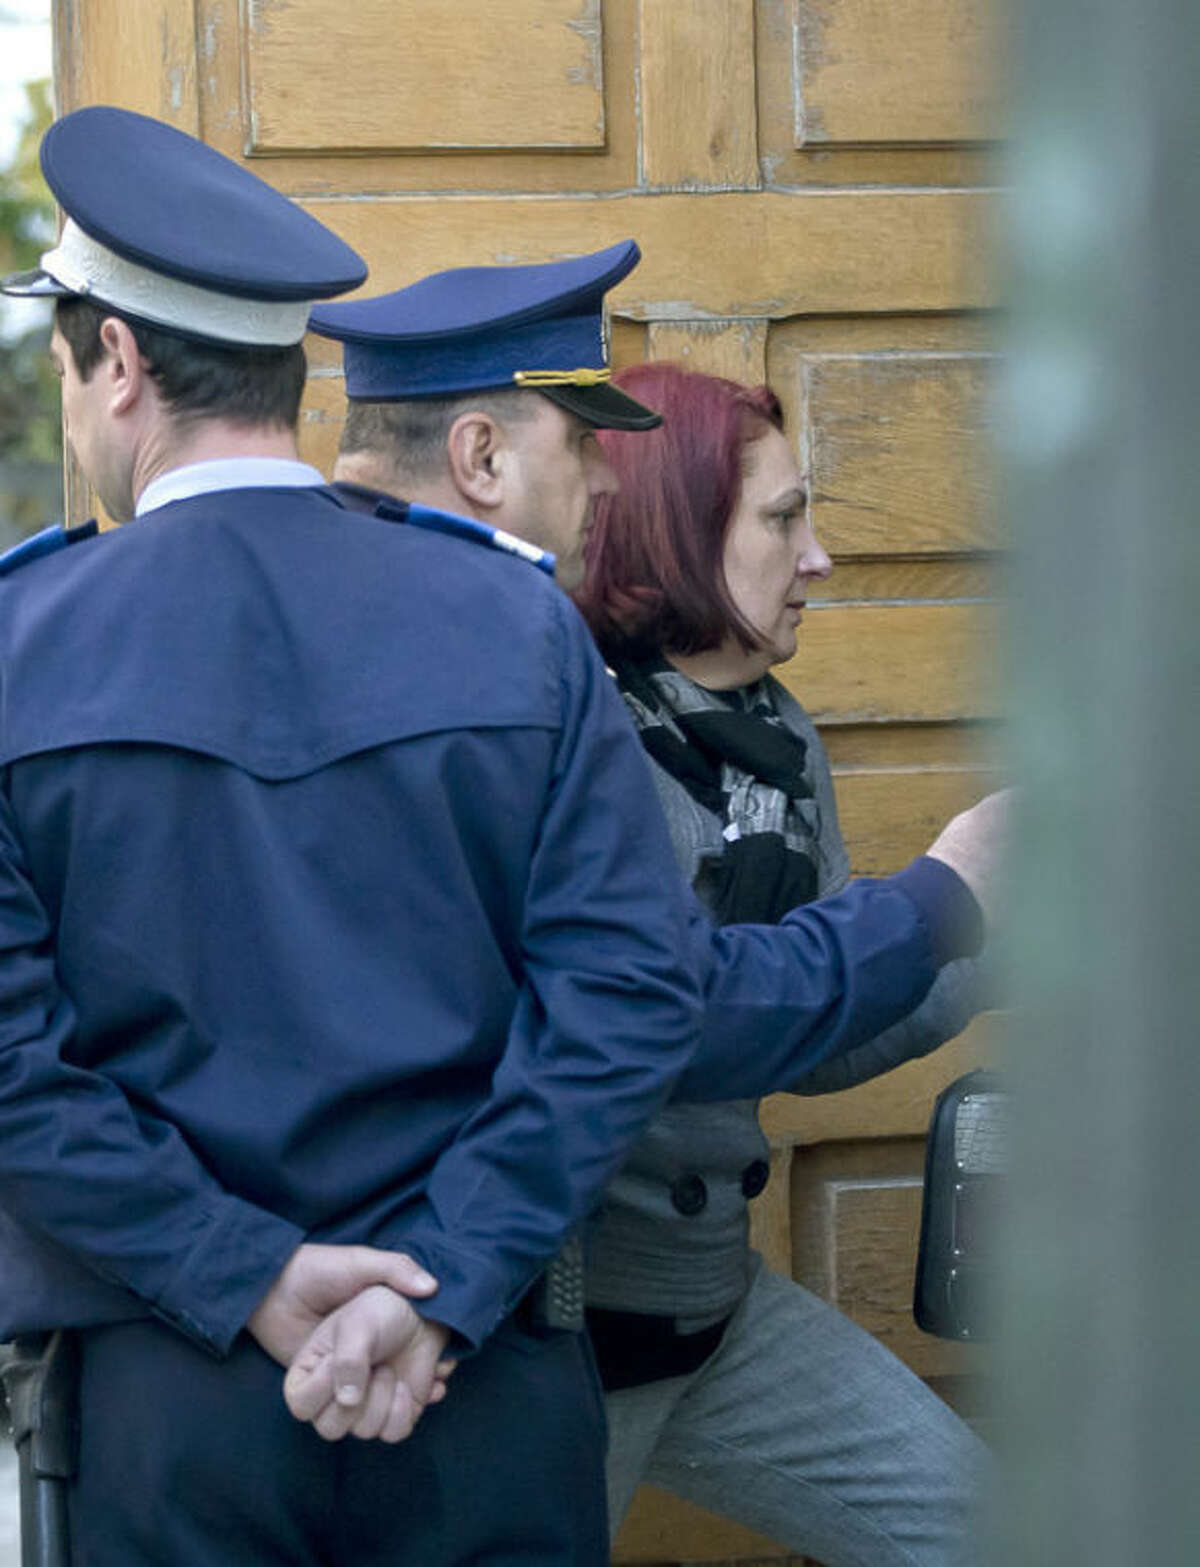 Olga Dogaru, right, the mother of a suspect charged with stealing paintings from a Dutch museum, is escorted into a court building for a hearing in their trial in Bucharest, Romania, Tuesday, Oct. 22, 2013. Three Romanians Radu Dogaru, Alexandru Bitu and Eugen Darie, have pleaded guilty to stealing seven paintings, including works by Picasso, Monet and Matisse, from a Dutch museum in a daring daytime raid that shocked the art world. In their depositions to prosecutors, the suspects said they brought the paintings to Romania, tried to sell them on the black market, then left them with Olga Dogaru, the chief suspect's mother.(AP Photo/Vadim Ghirda)